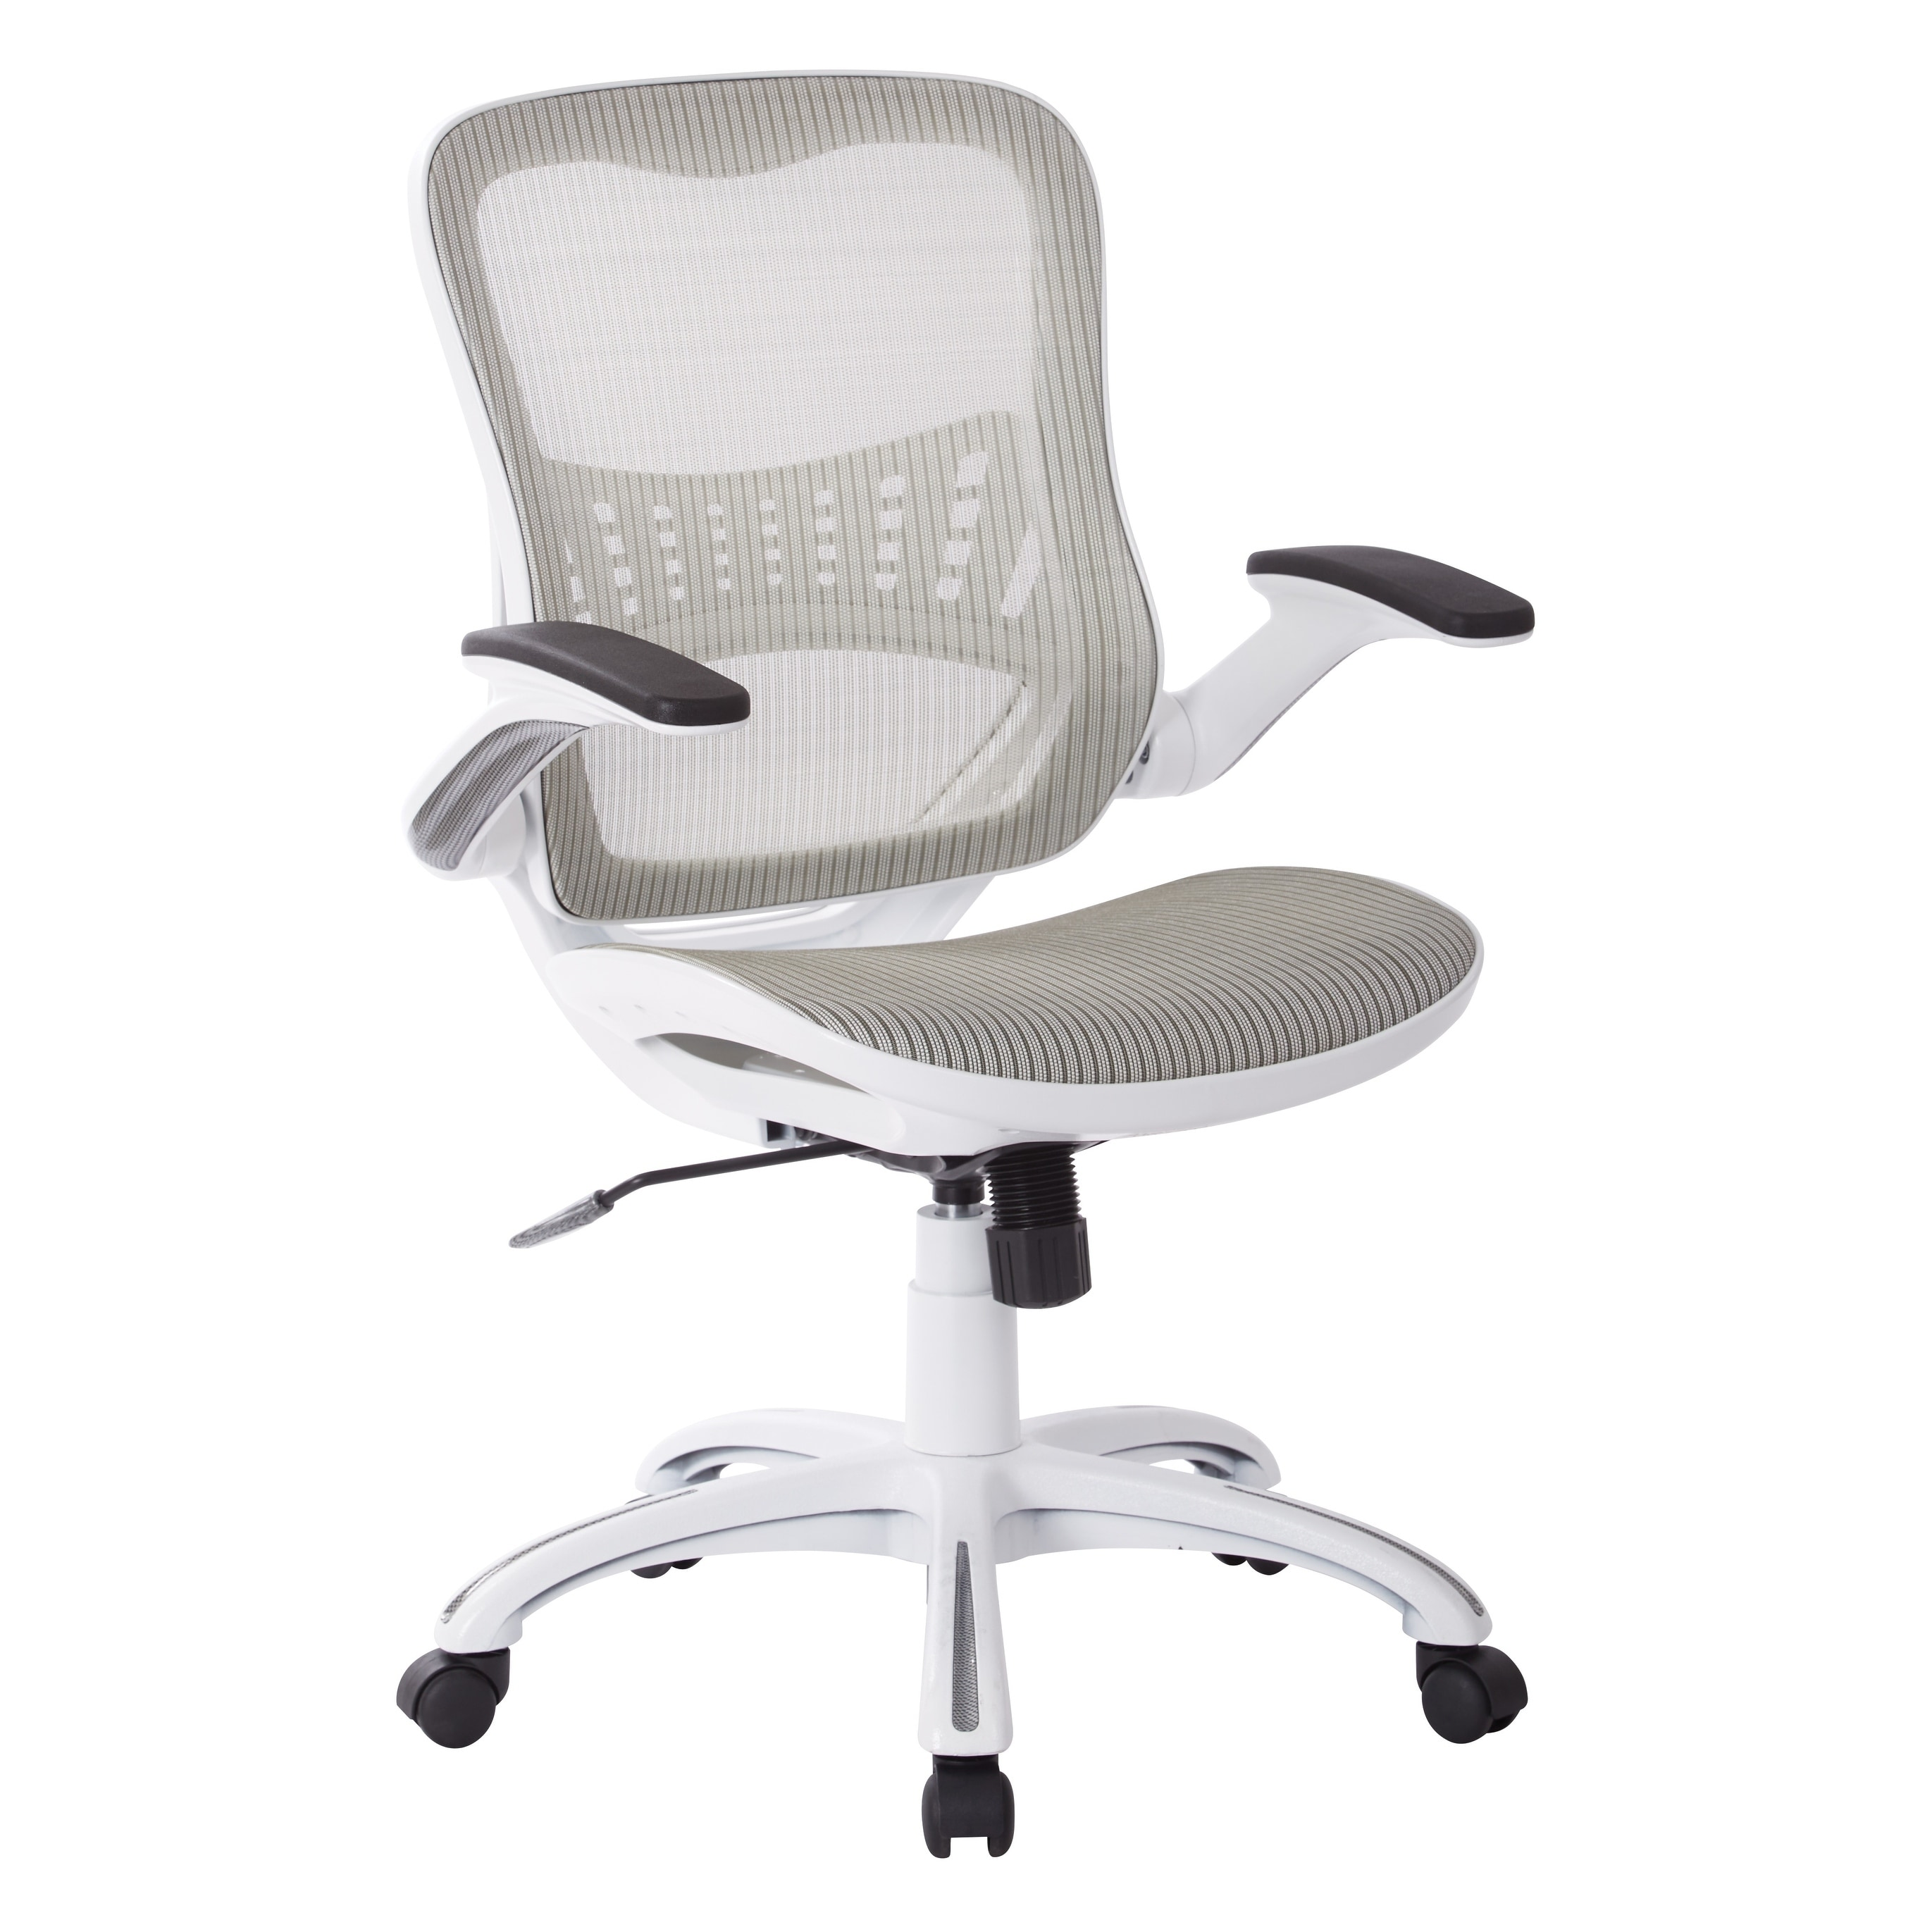 Office Chair With White Mesh Seat